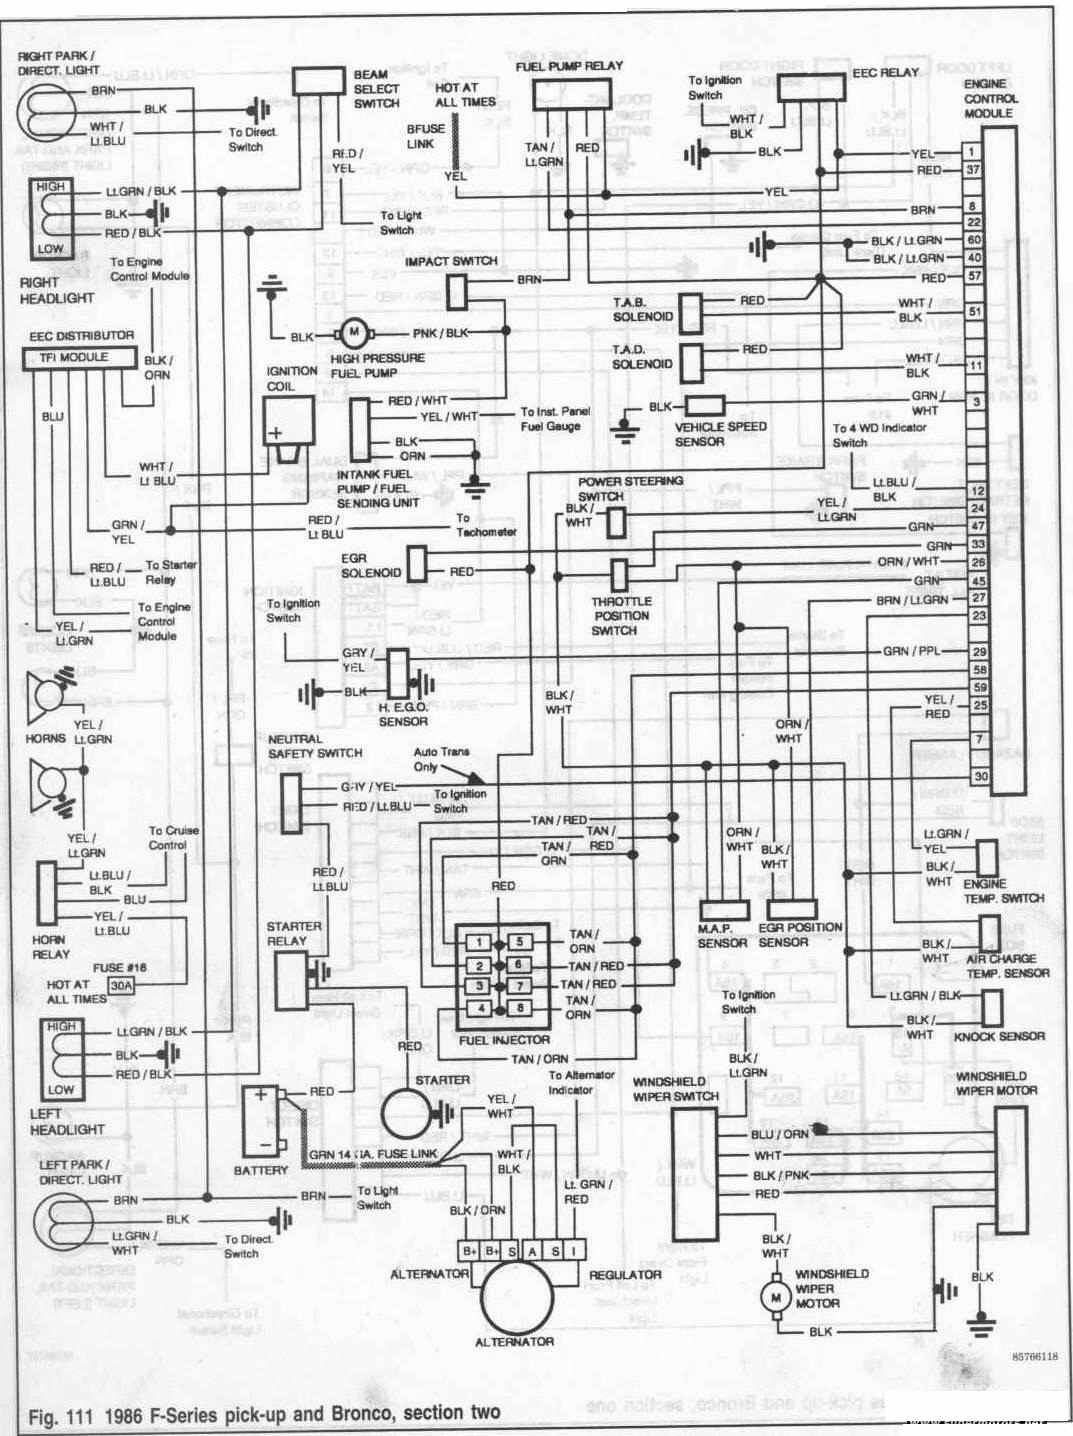 Great 1994 Ski Doo Wiring Booster Pump Station Diagram Pedigree 1989 Sea Free Download Ford Bronco And F Series Pickup 1986